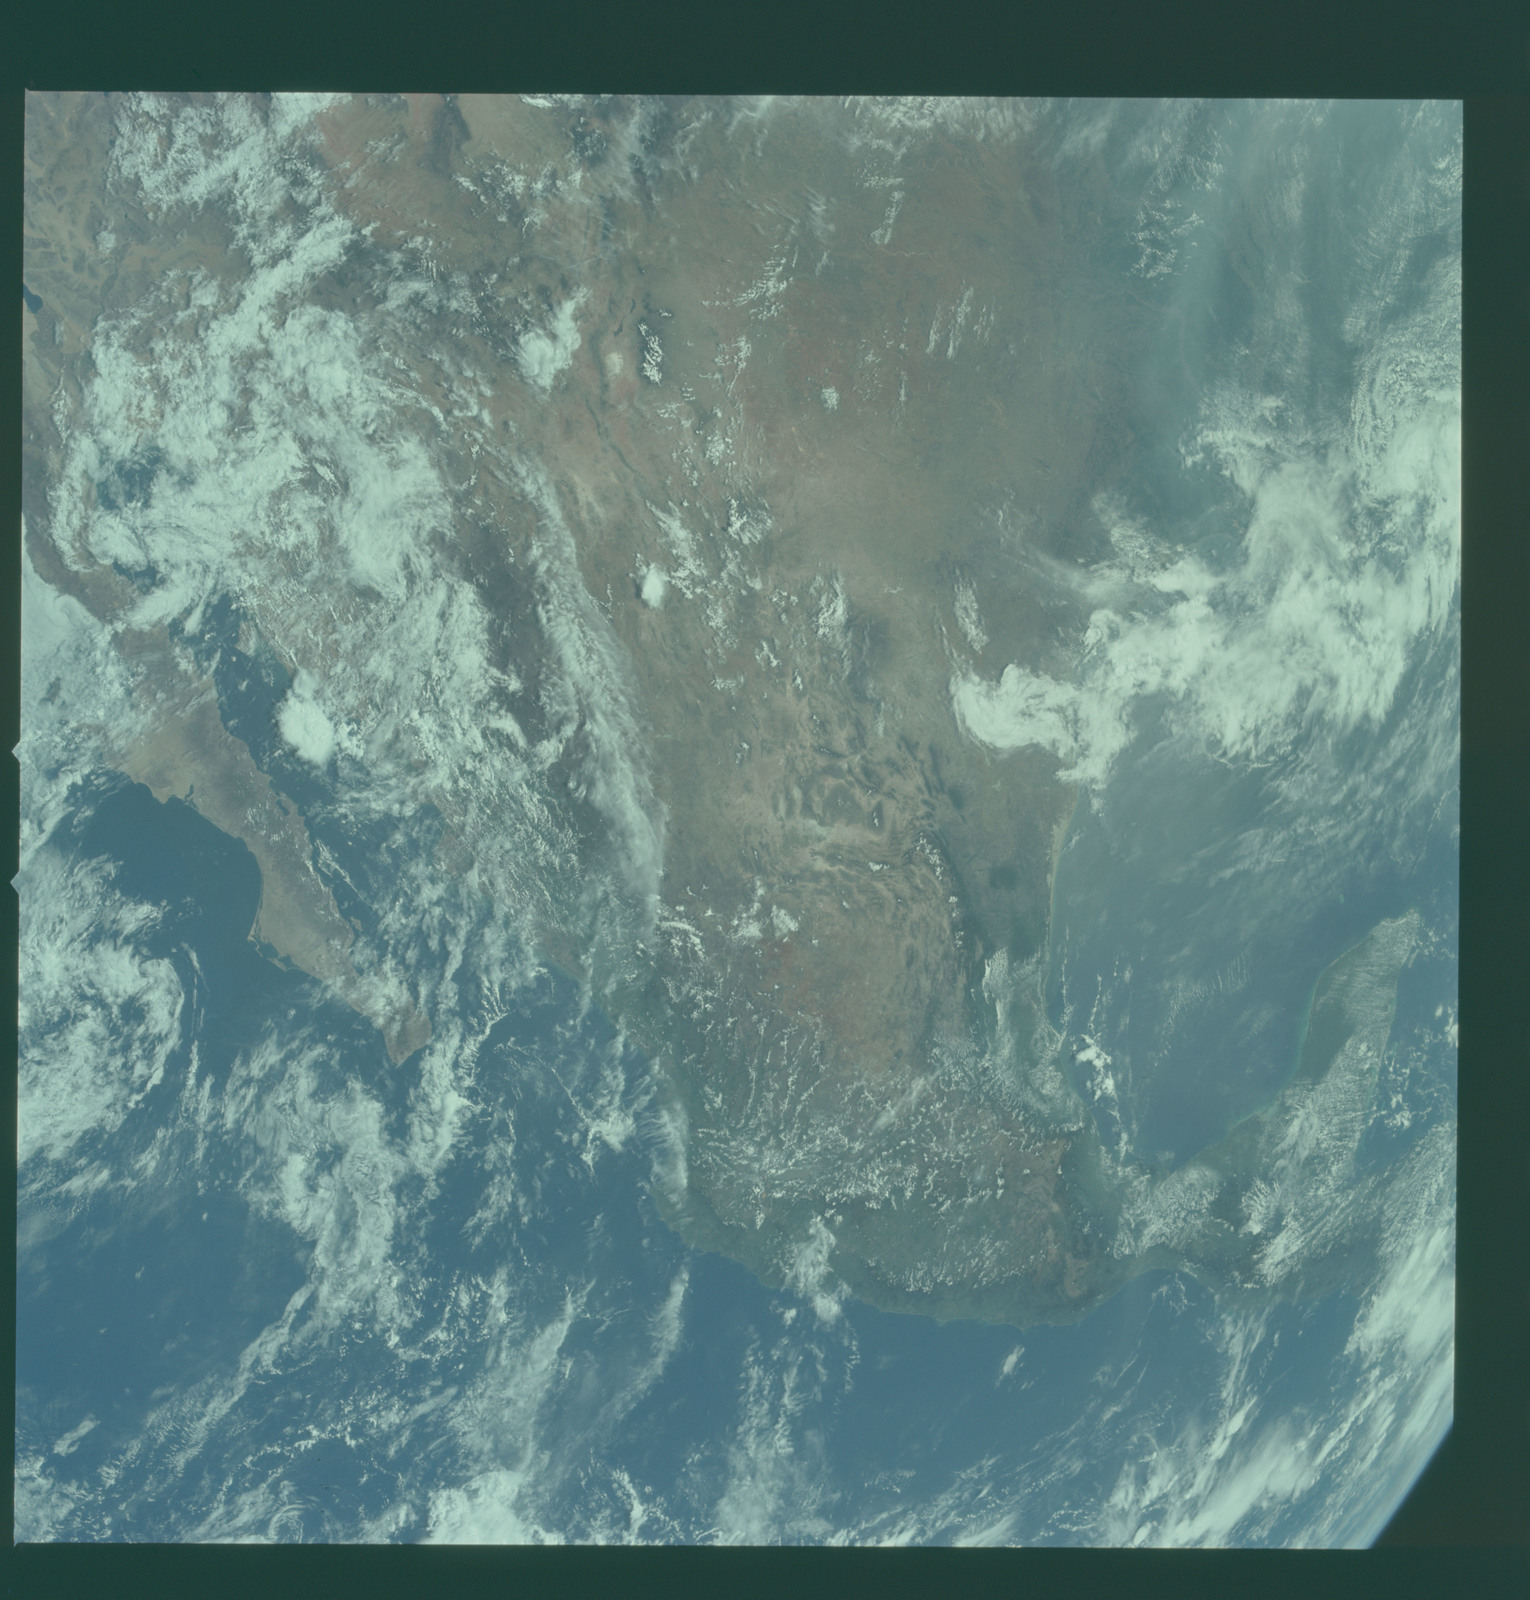 AS11-36-5306 - Apollo 11 - Apollo 11 Mission image - Earth view with United States, Mexico and Baja visible